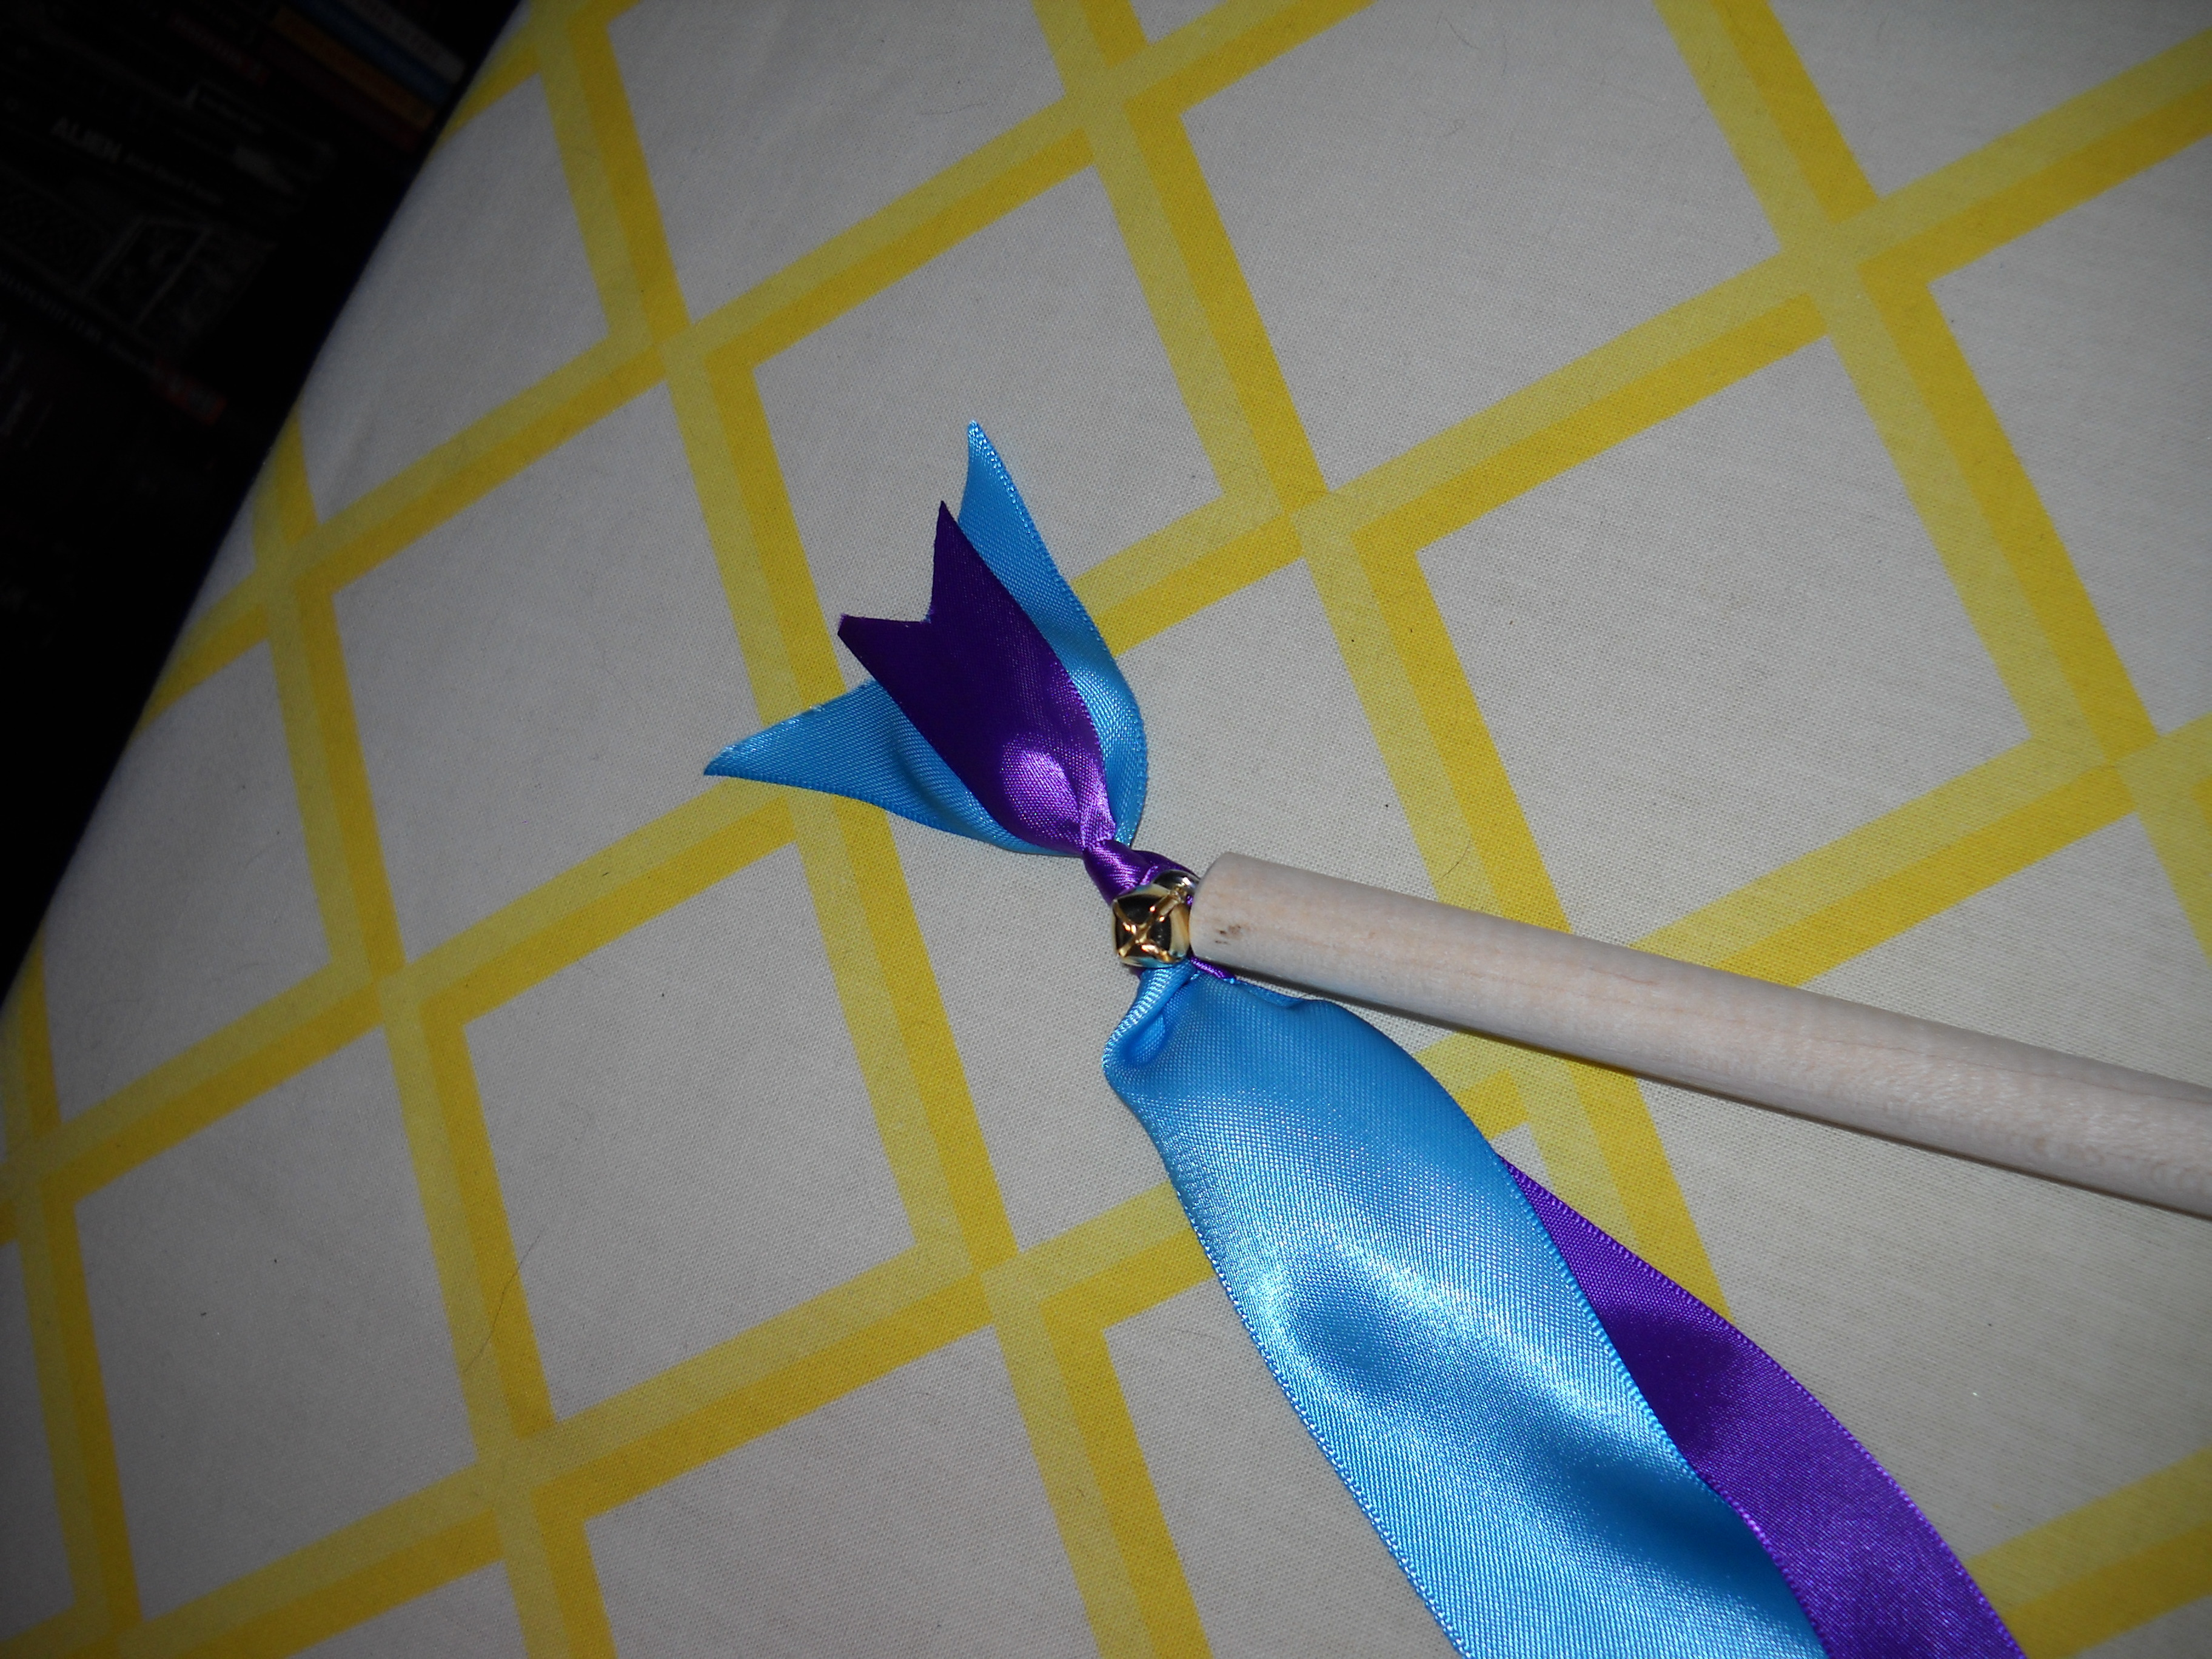 purple, blue, gold, Ring, Ribbon, Satin, Turquoise, Eye, Bell, Wand, Claytonandshauna, Split, Screw, Dowel, Ribbonwand, Eyescrew, Splitring